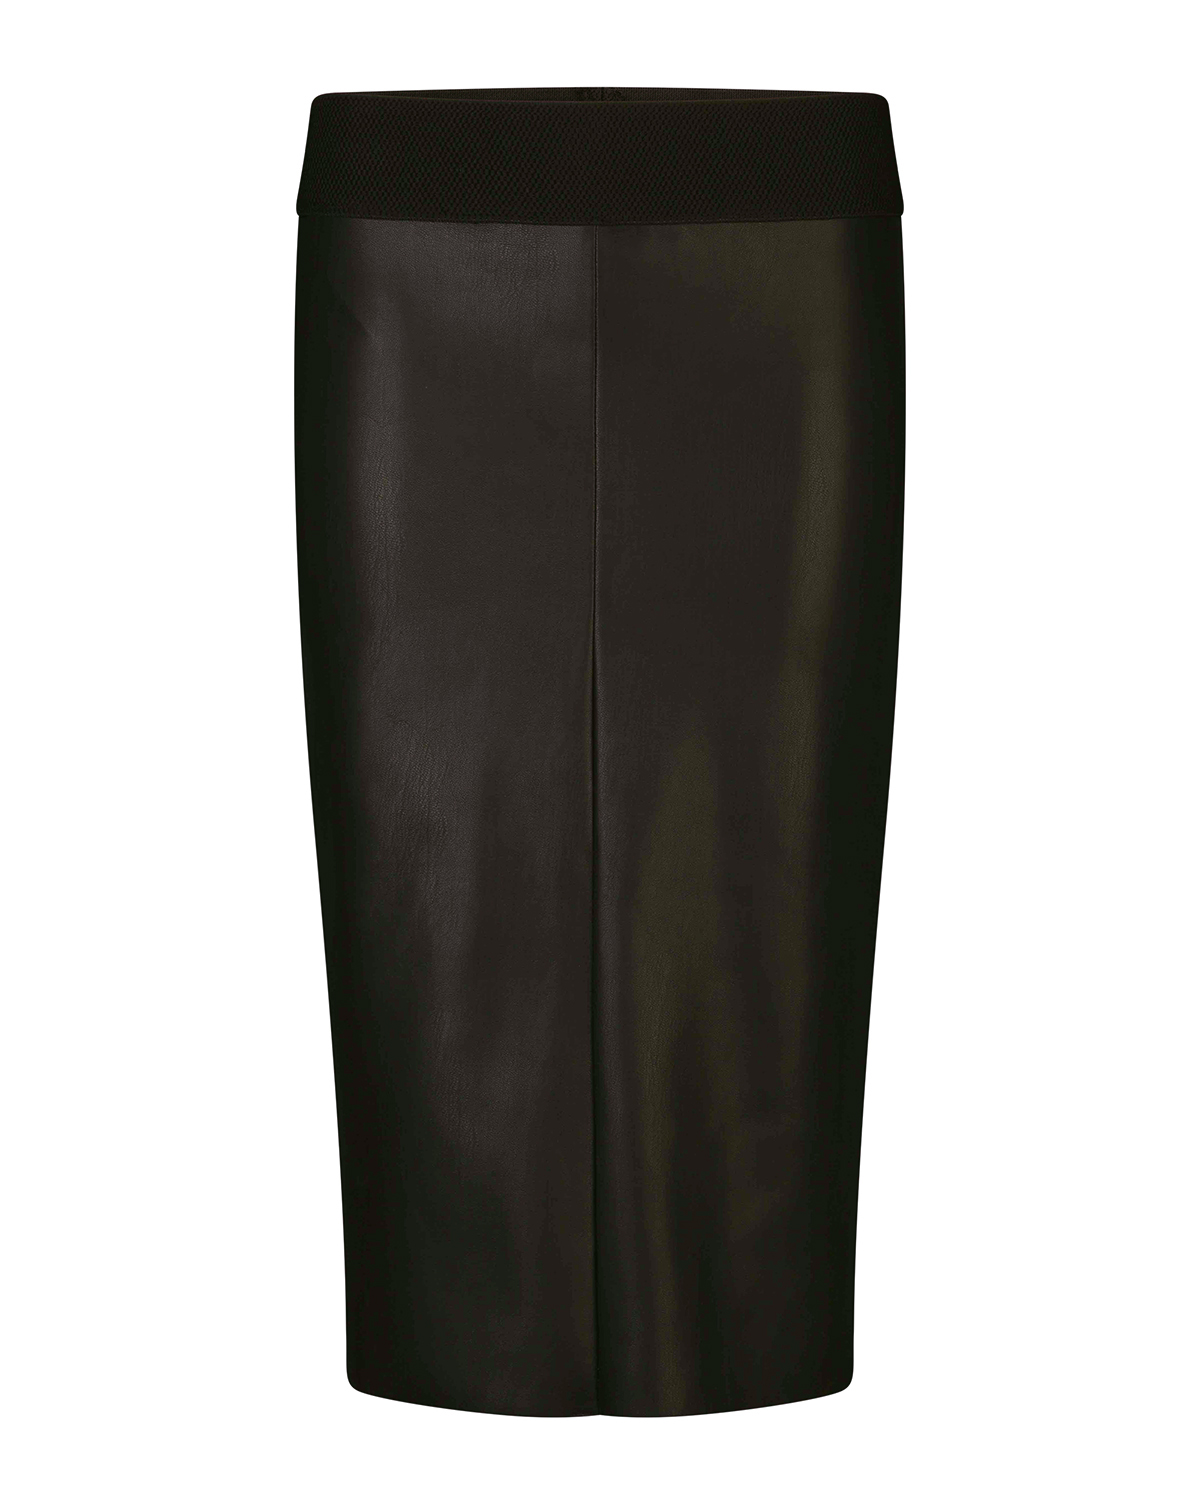 We x nina dames faux leather pencil skirt